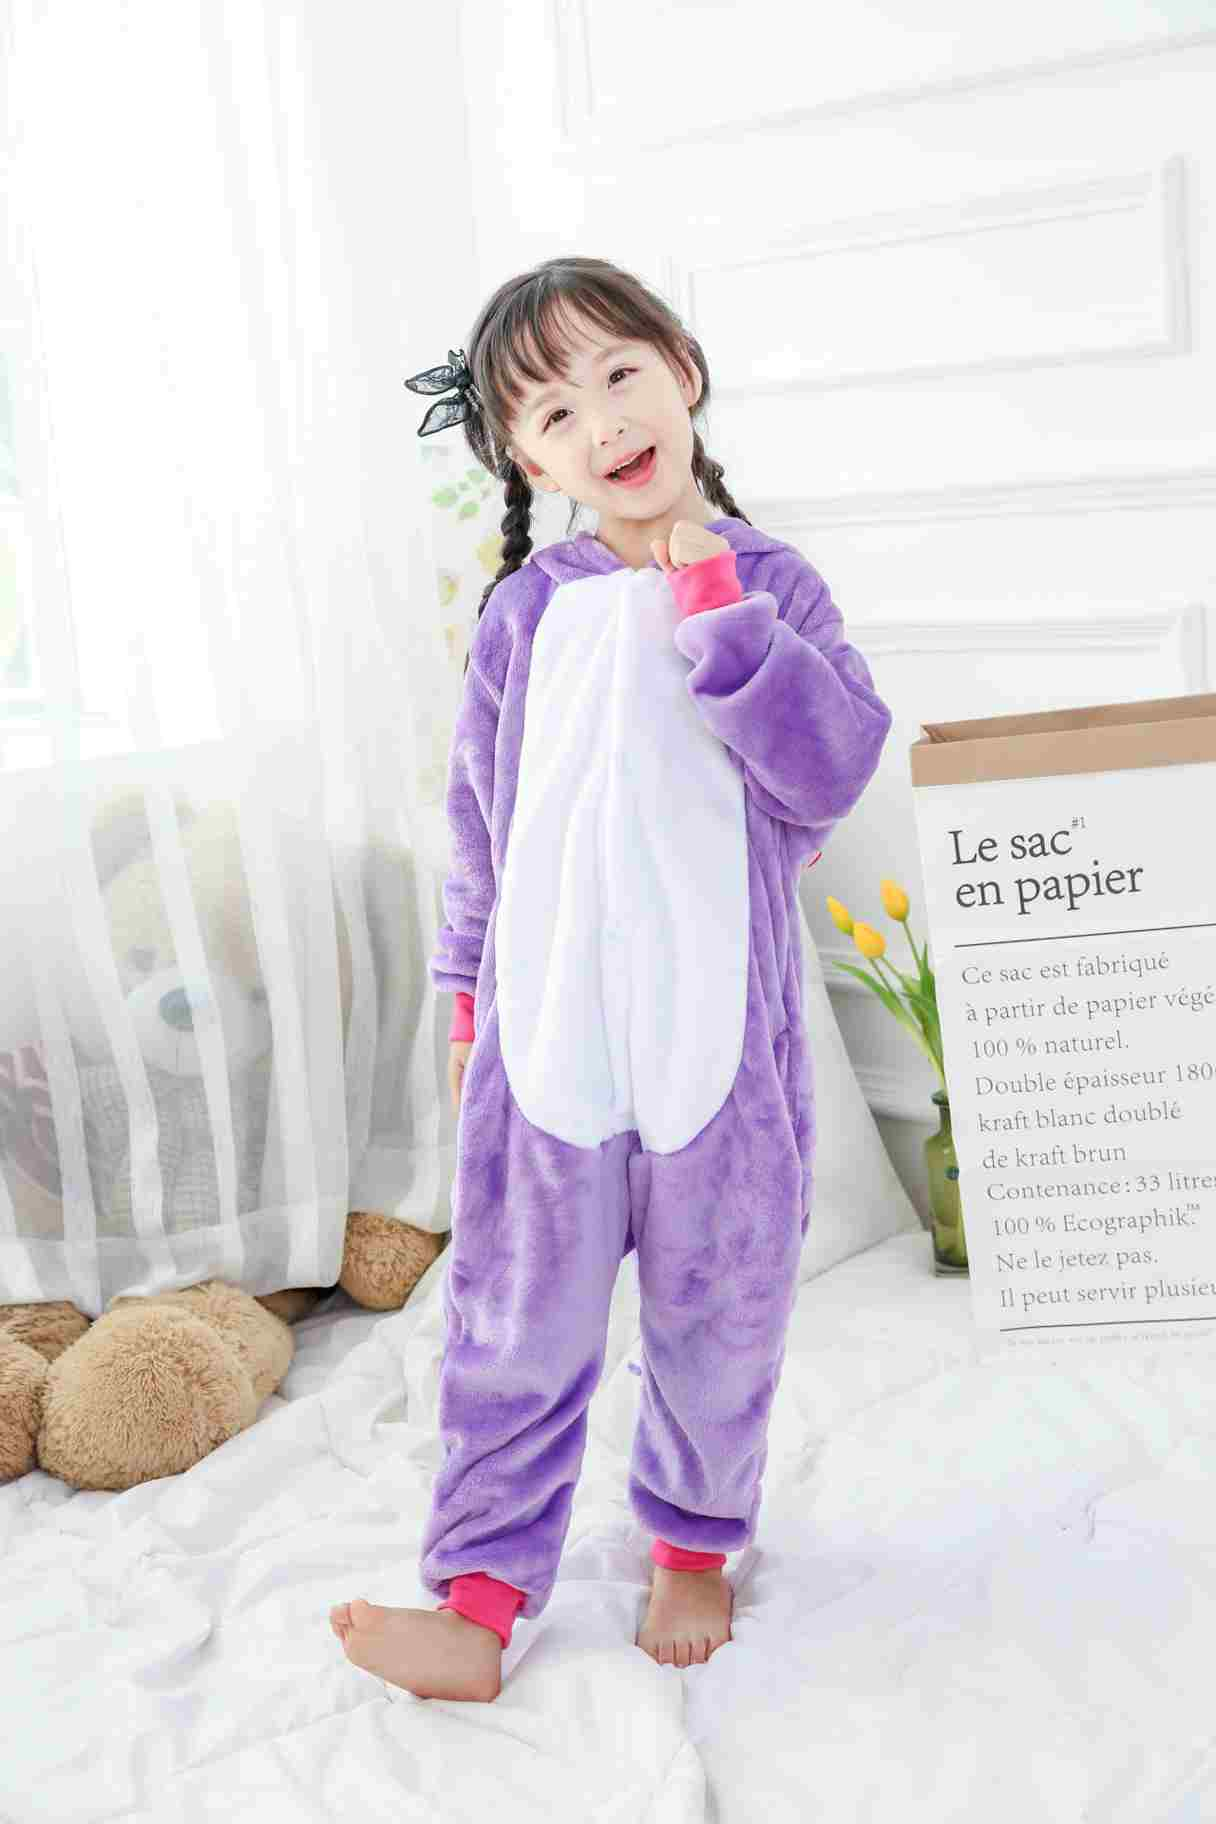 Tips For Finding The Best Animal Kigurumi Onesies